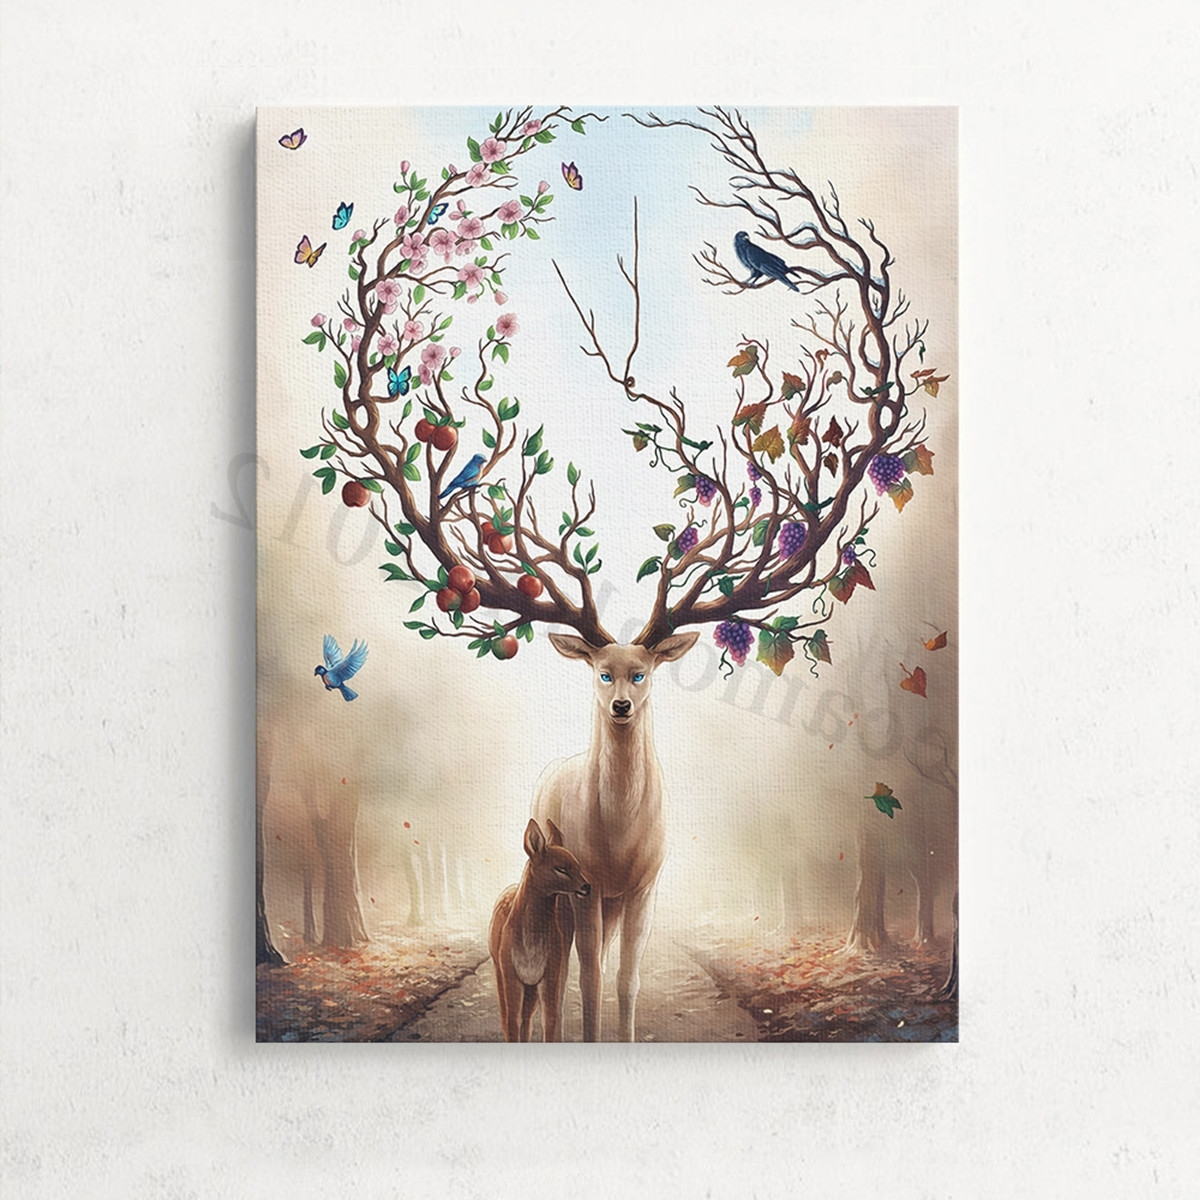 Unframed Canvas Print Deer Design Modern Home Decor Wall Art With Regard To 2017 Home Decor Wall Art (Gallery 9 of 20)